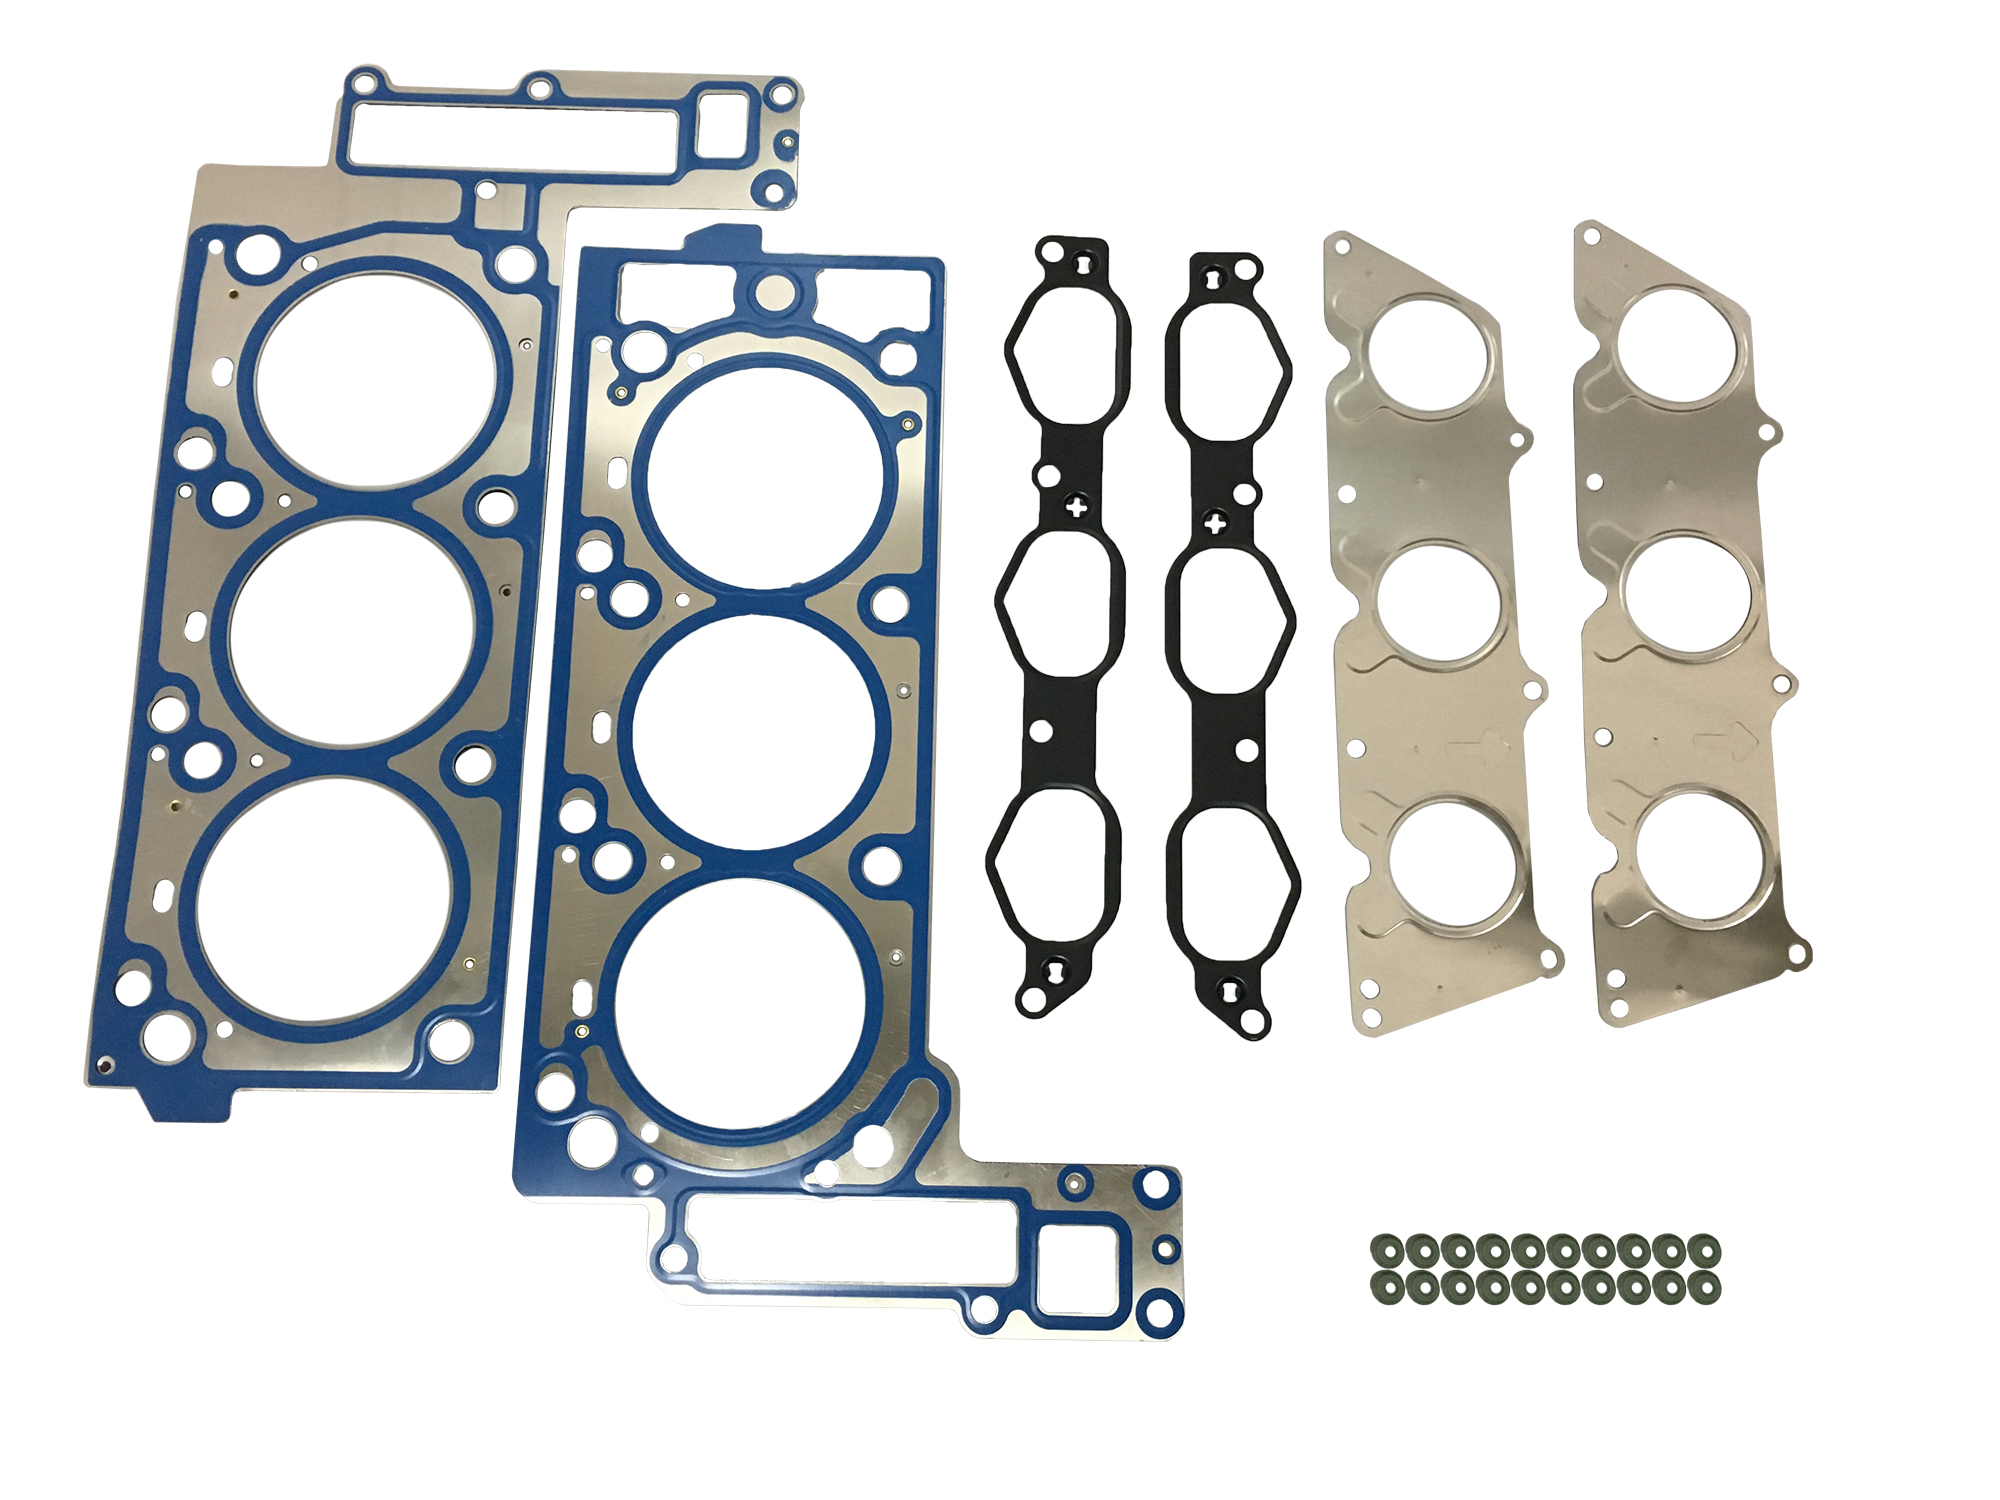 Gasket set cylinder head gasket Mercedes-Benz C-class W204 3.5 272.960 NEW